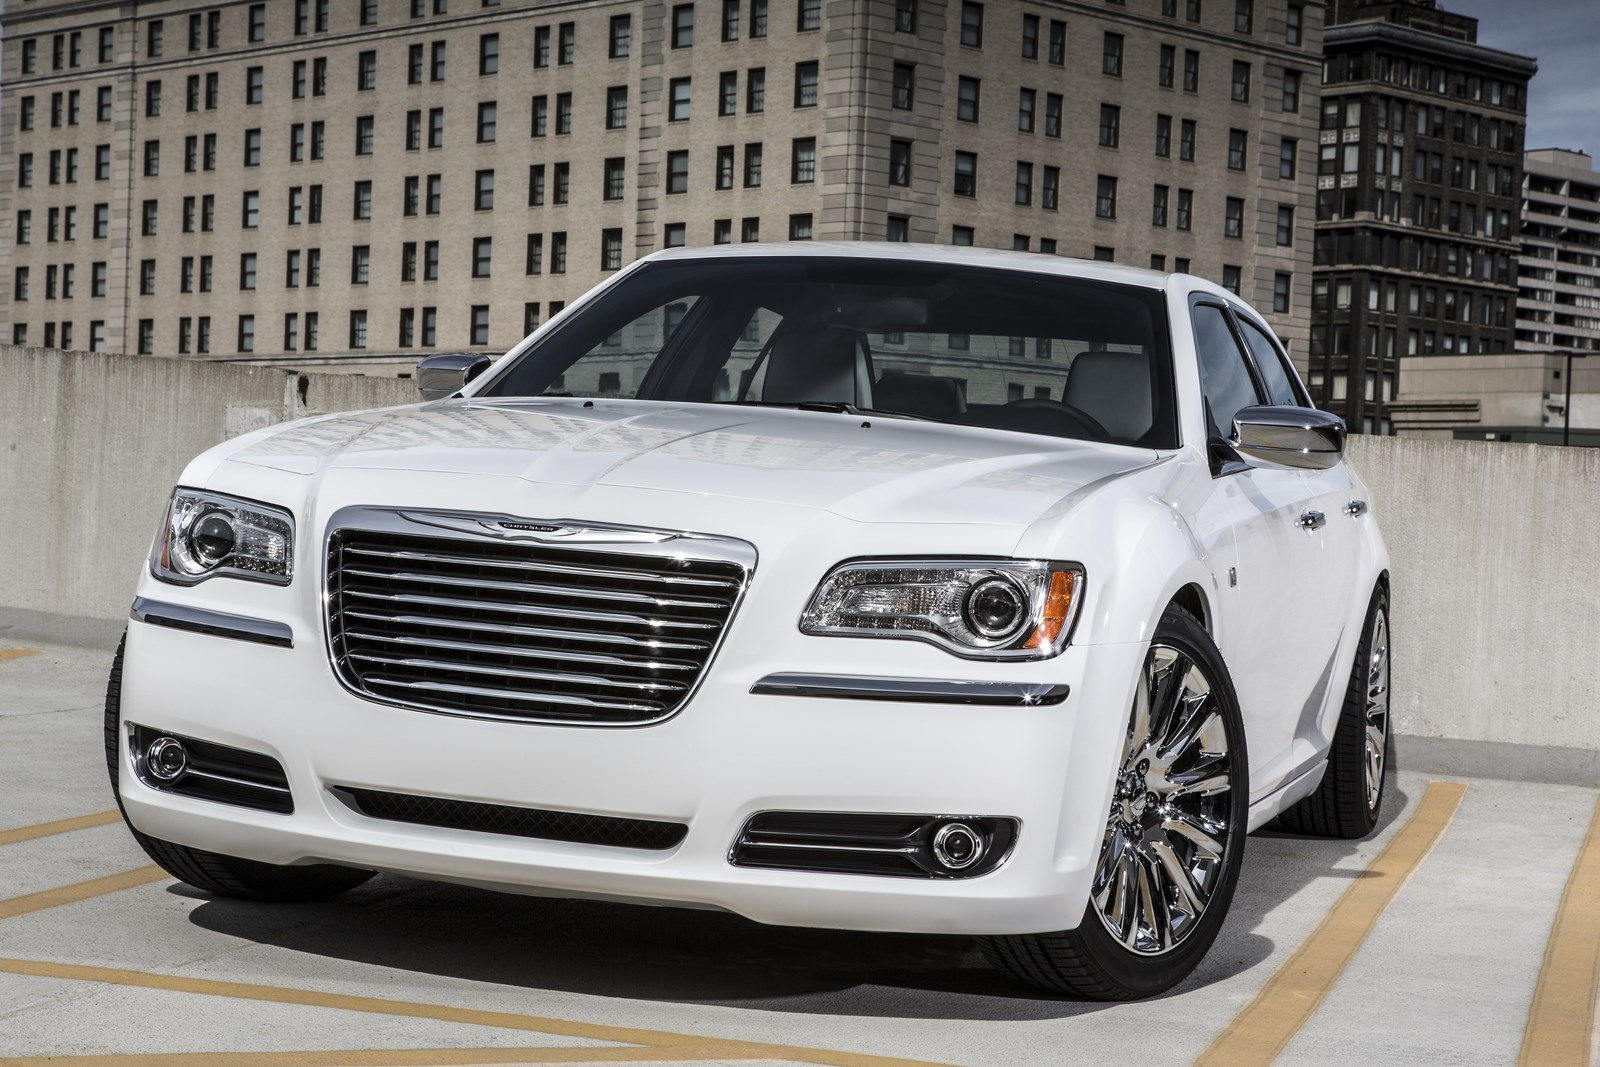 chrysler 300 motown edition 2013 2014 with video garage car. Black Bedroom Furniture Sets. Home Design Ideas